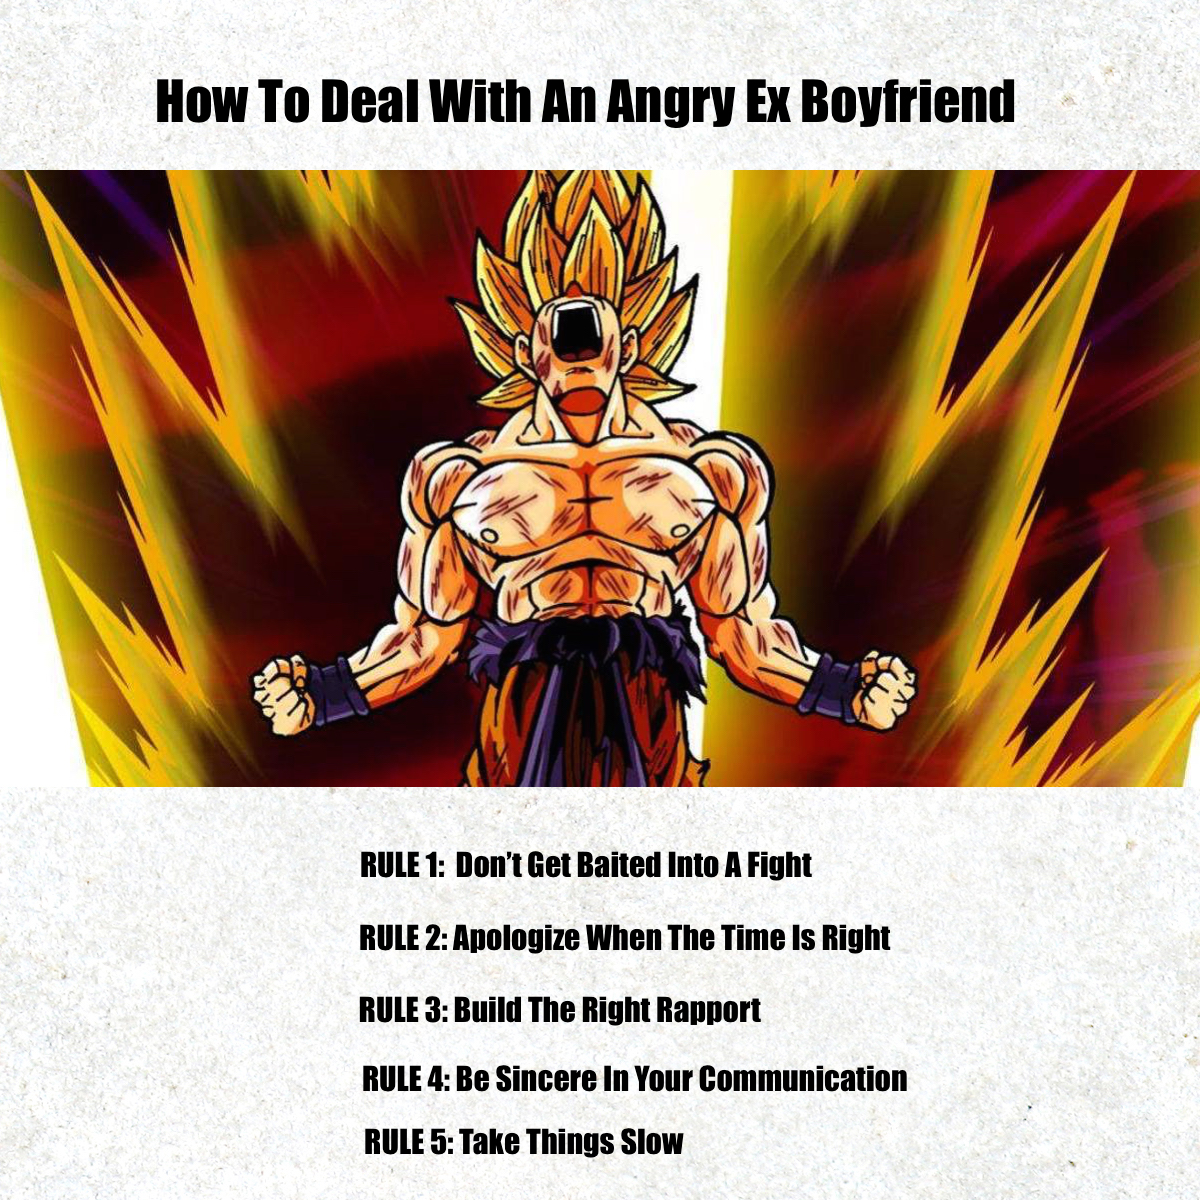 How To Deal With An Angry Ex Boyfriend